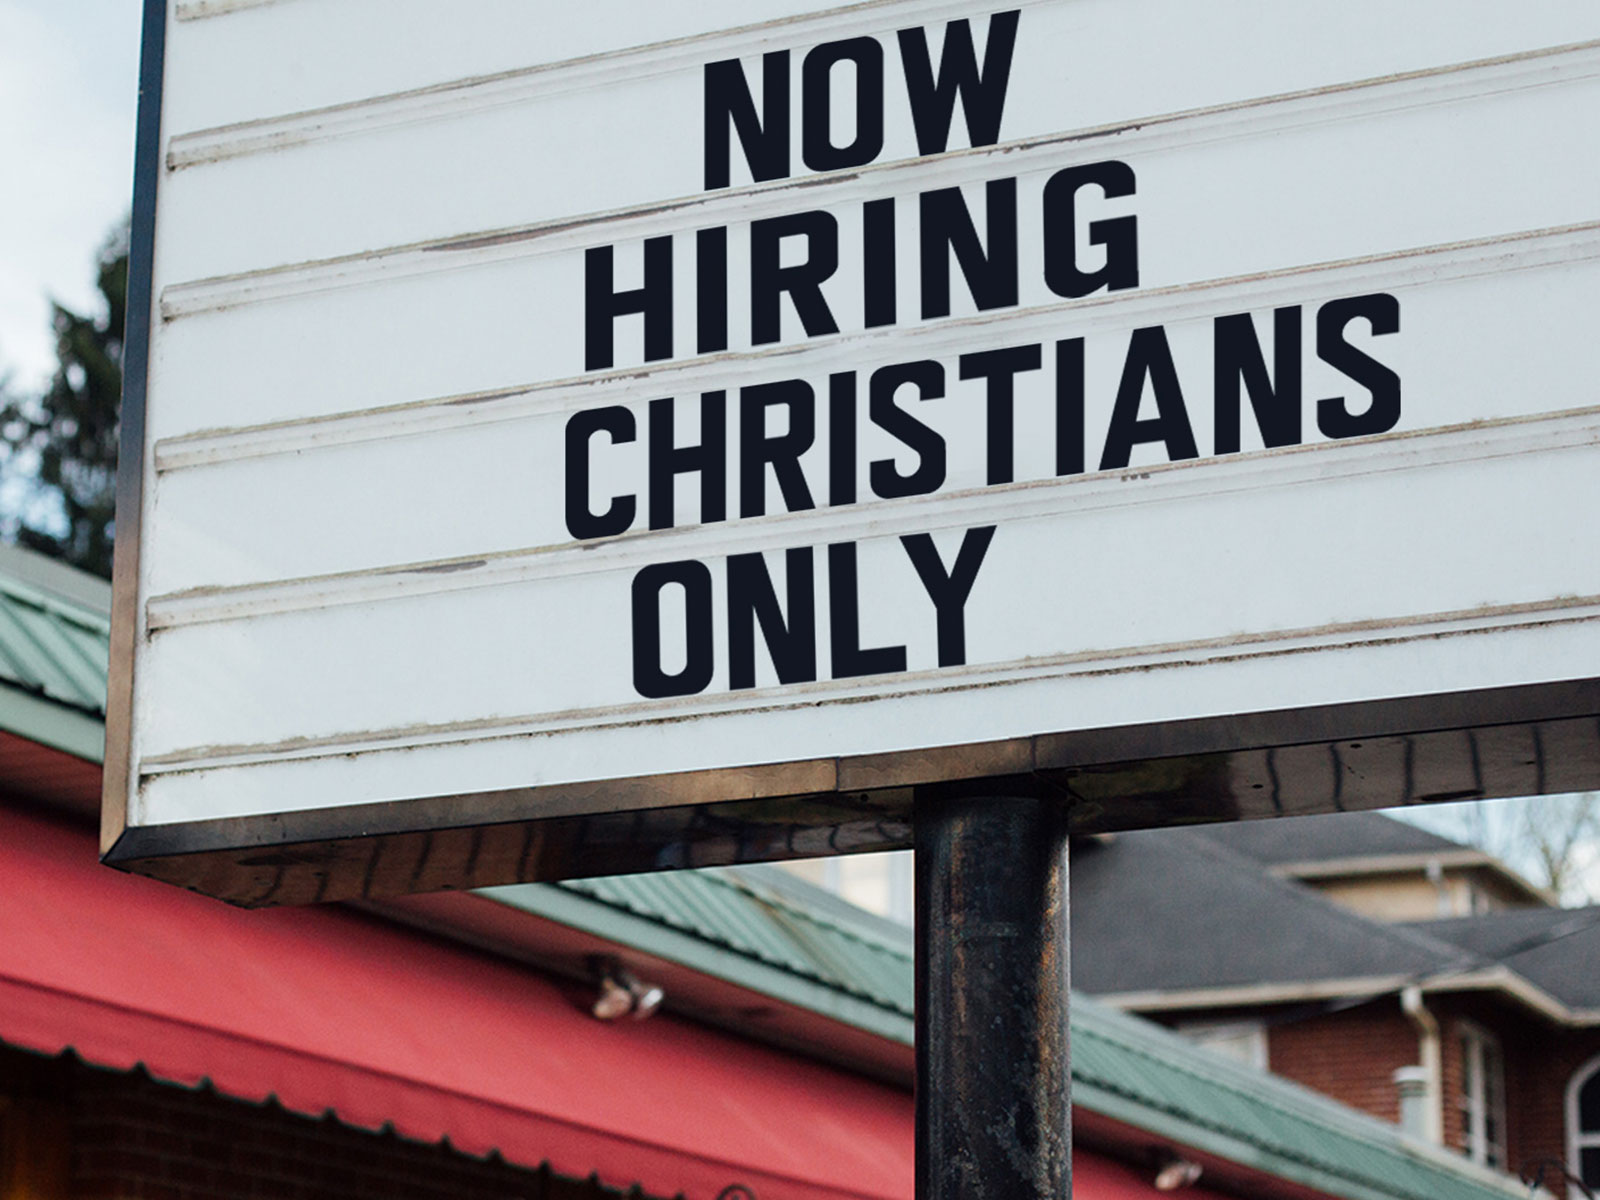 Department of Labor Greenlights Employment Discrimination in the Name of Religion | American Atheists